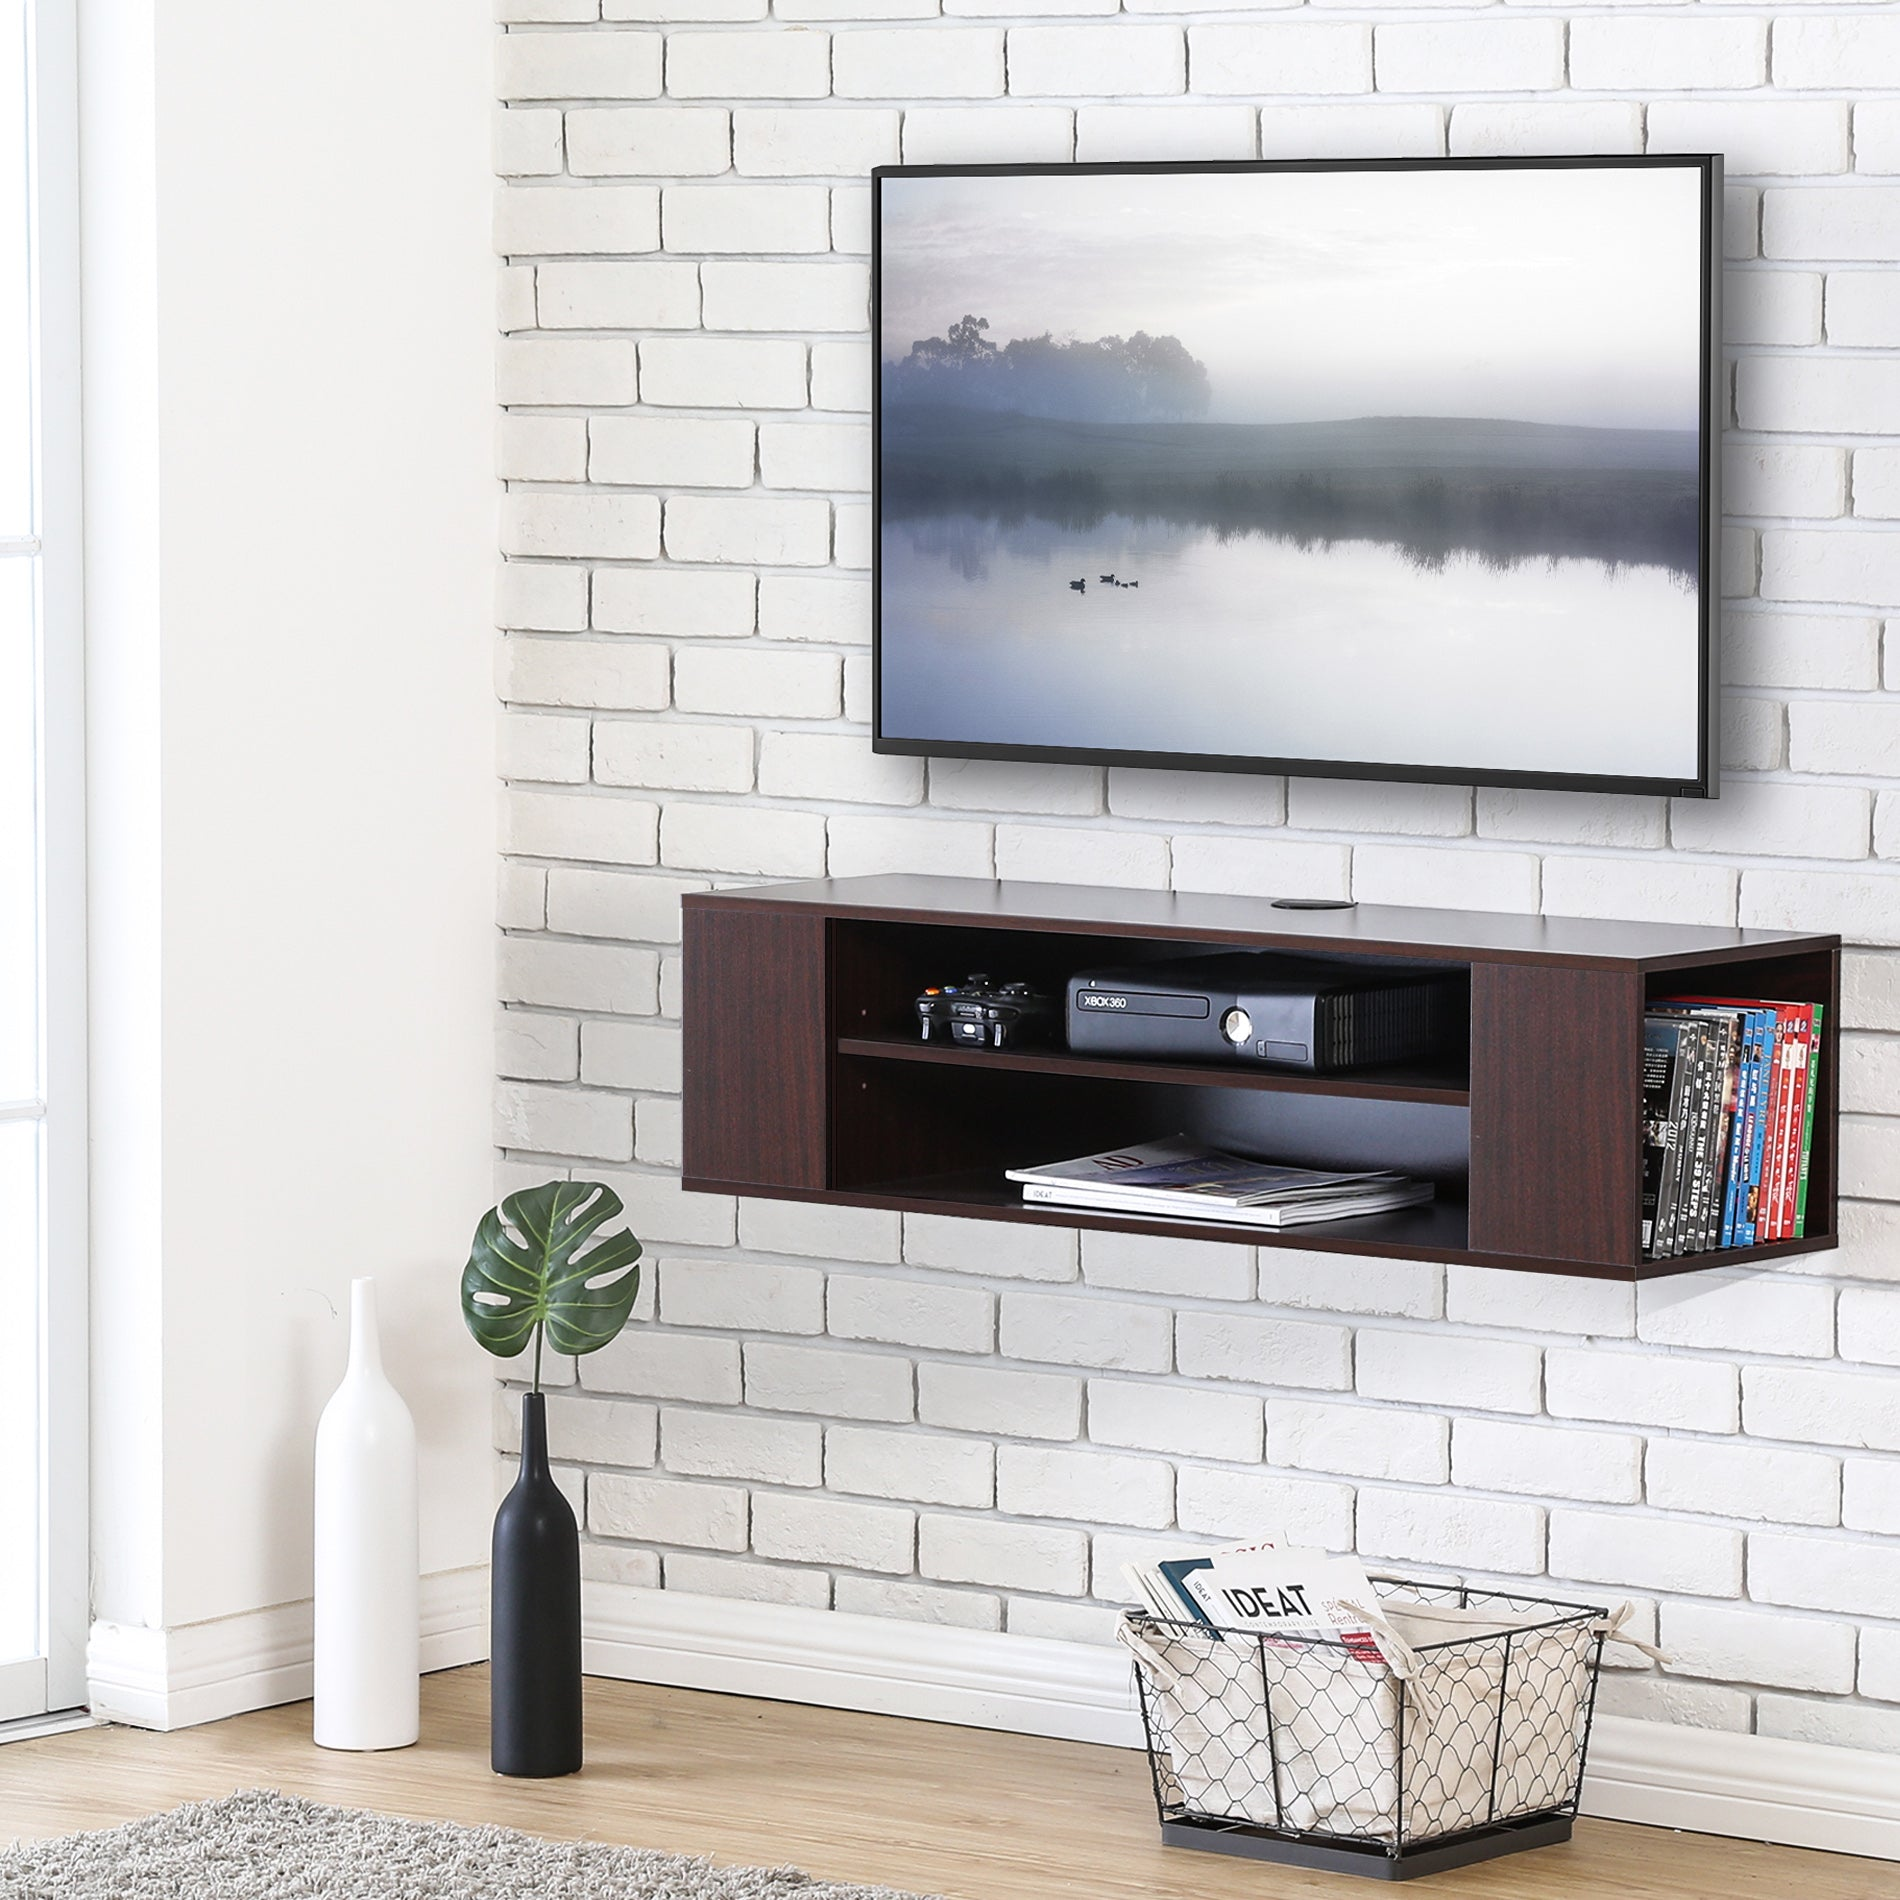 wall mount tv cabinet media console entertainment center tv stand rh fitueyes com wall mount tv furniture wall mount tv furniture